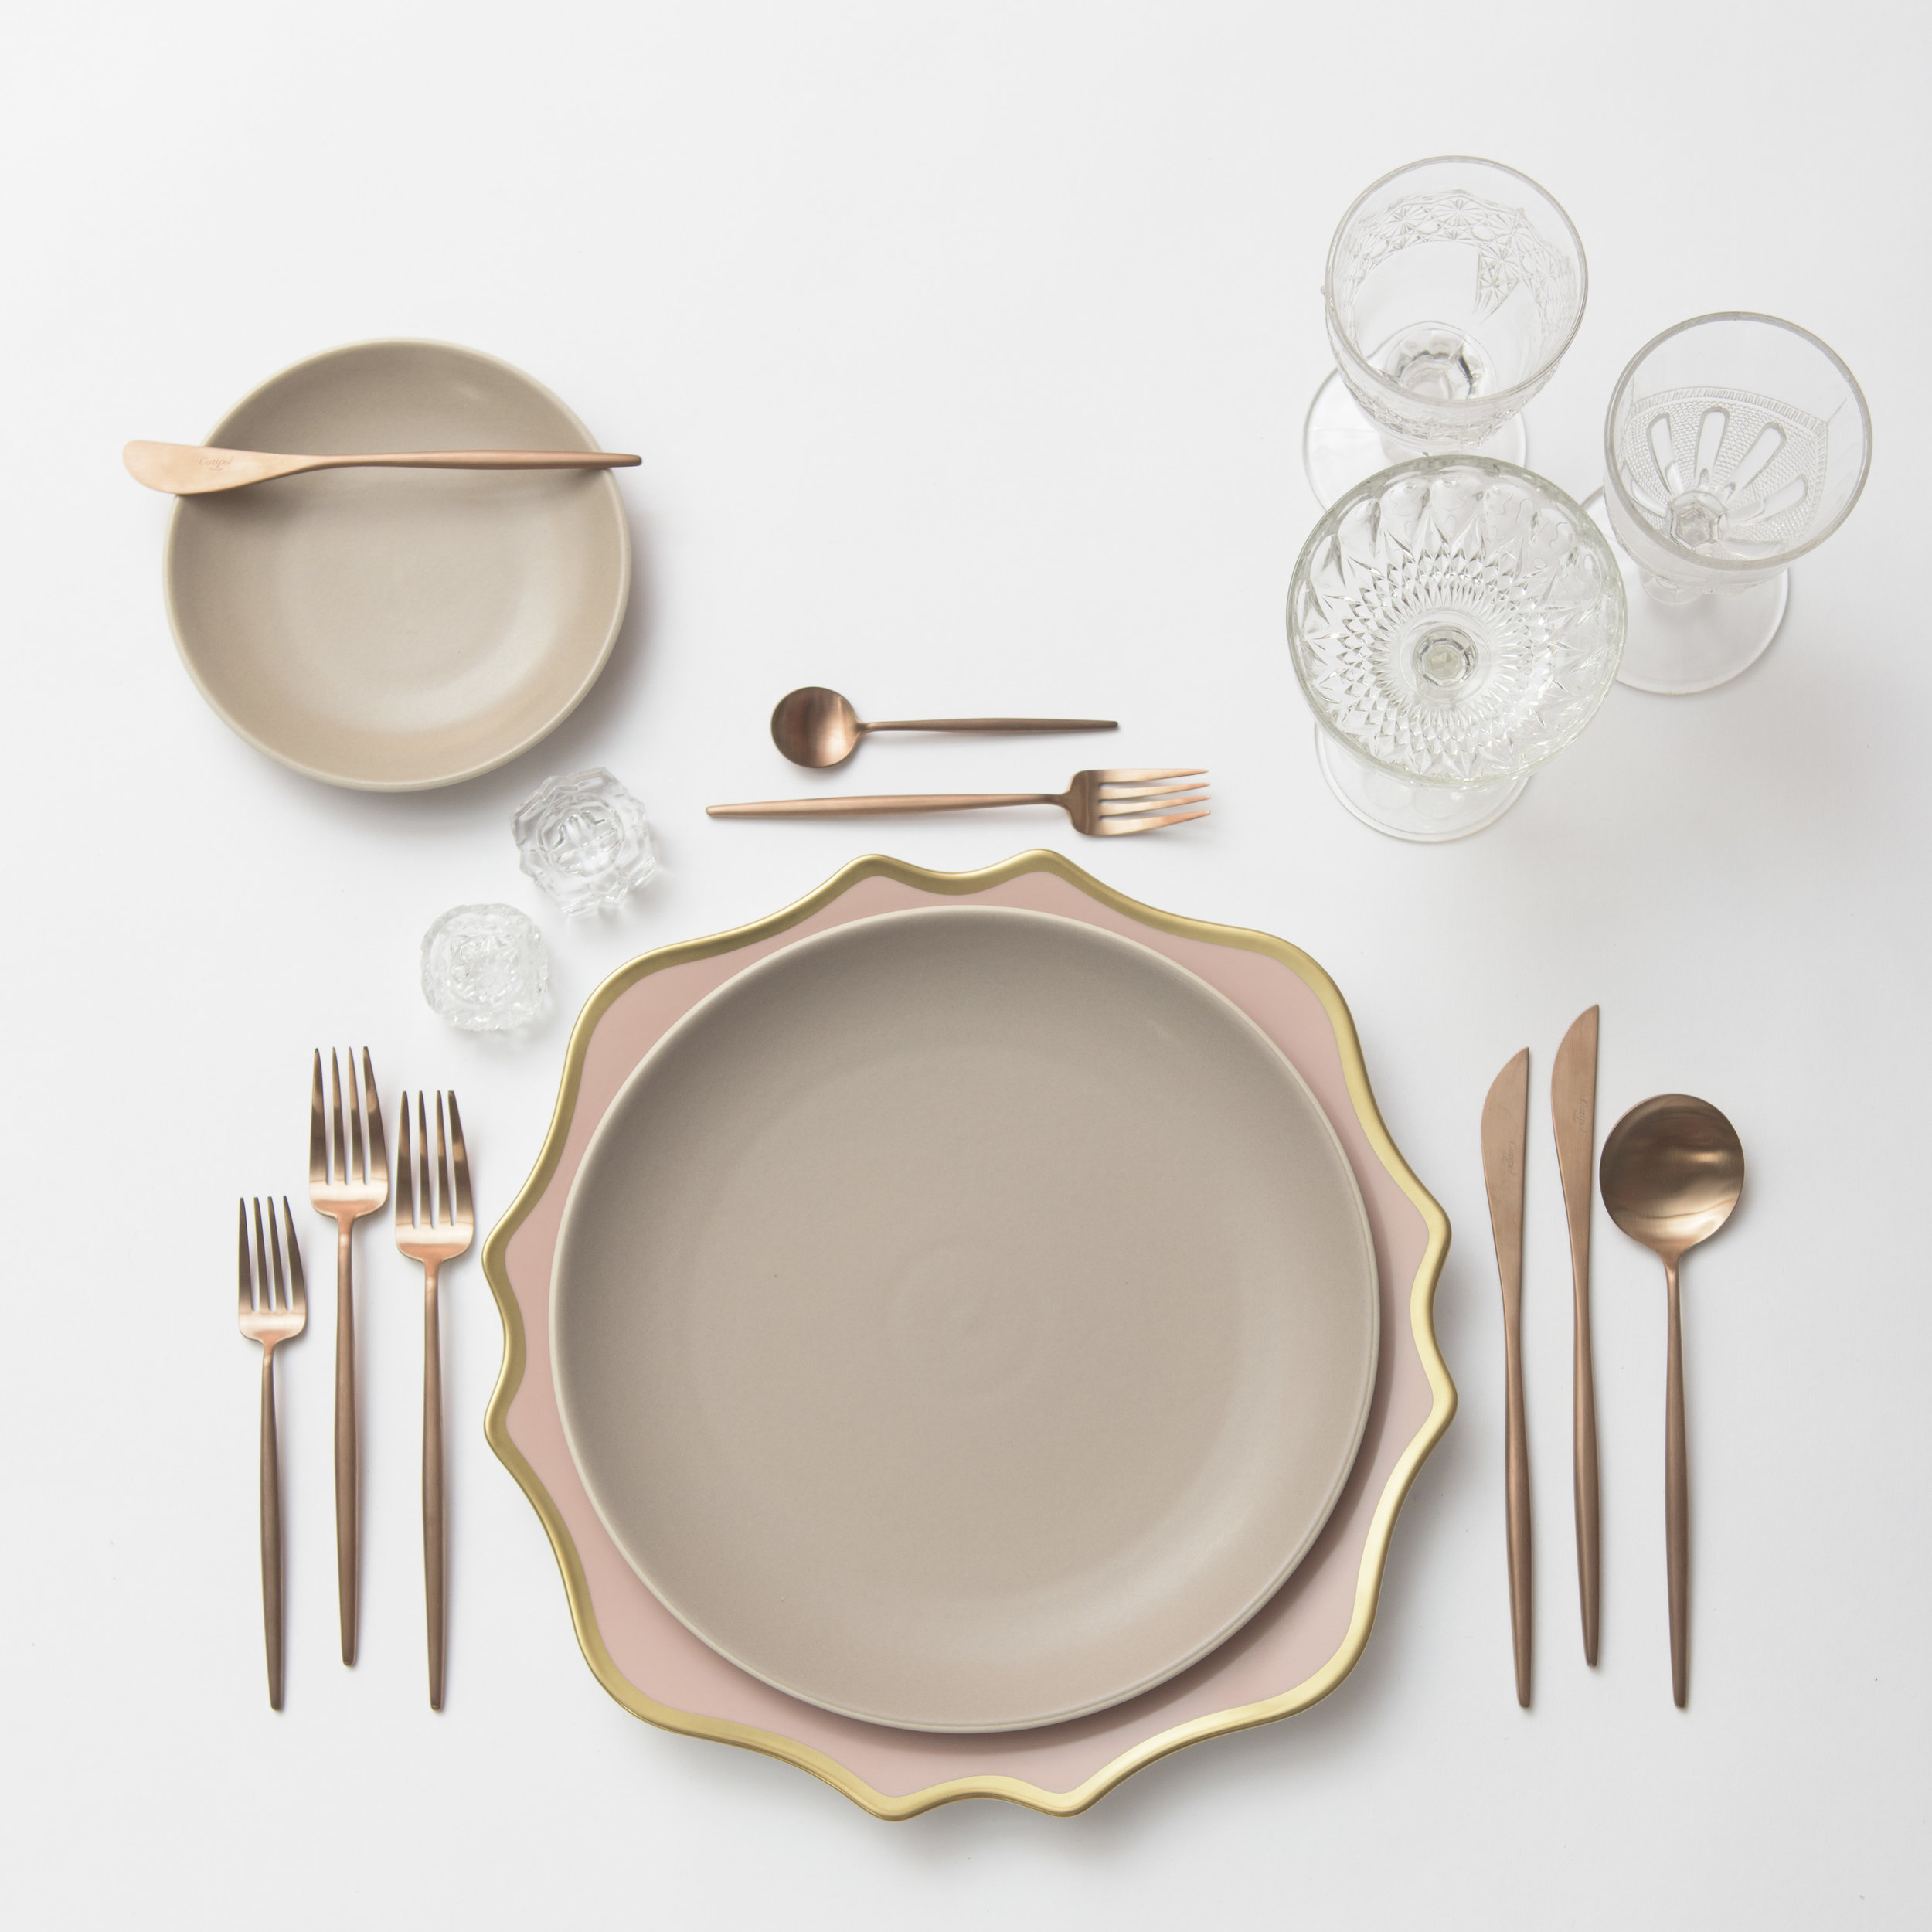 RENT: Anna Weatherley Chargers in Desert Rose/Gold +Heath Ceramics in French Grey + Moon Flatware in Brushed Rose Gold + Early American Pressed Glass Goblets + Vintage Champagne Coupes + Antique Crystal Salt Cellars  SHOP:Moon Flatware in Brushed Rose Gold